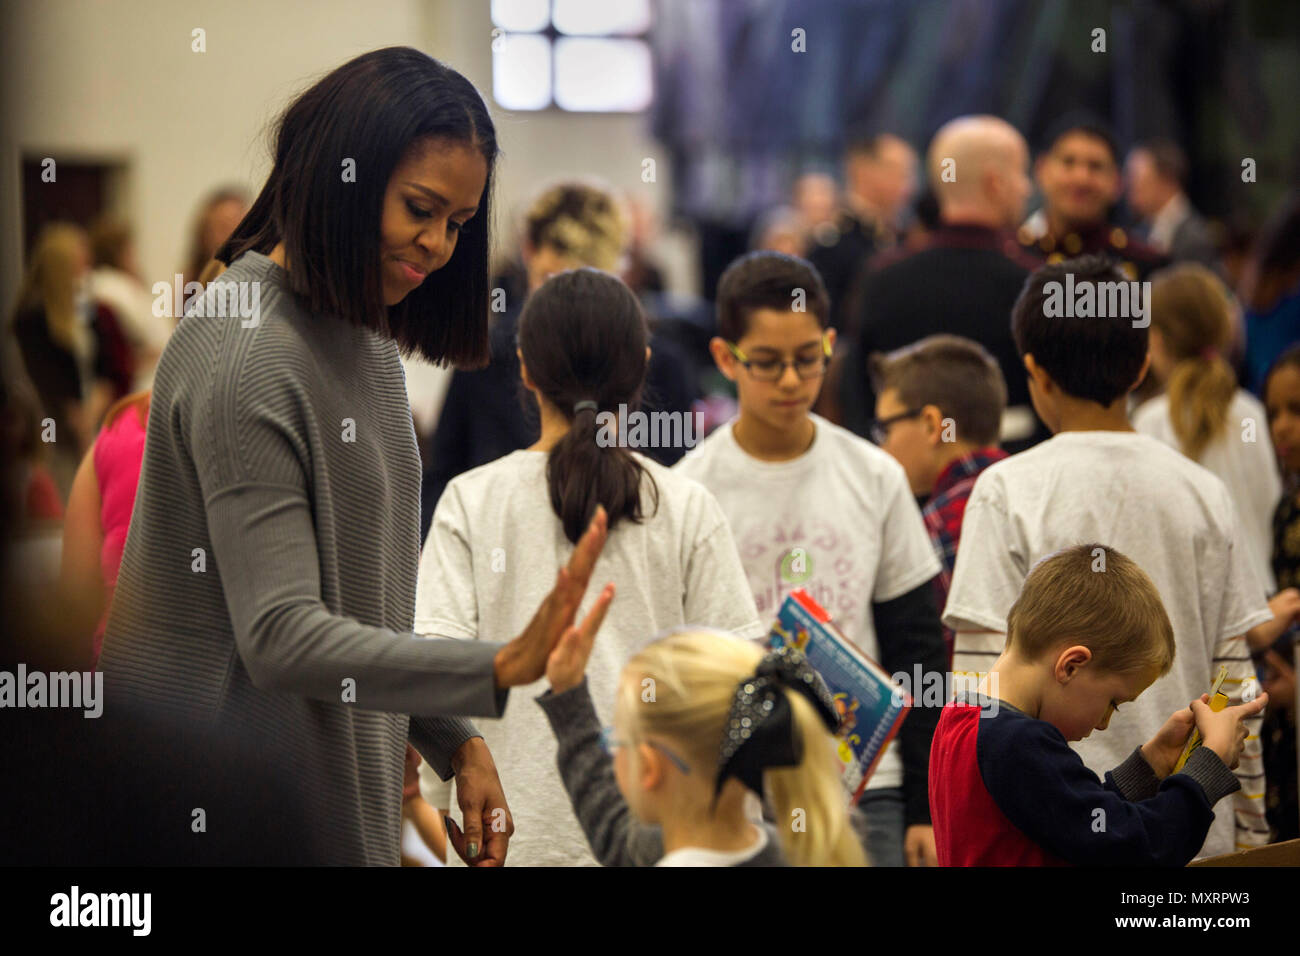 Toys For Tots Volunteer : First lady michelle obama high fives a volunteer at a toys for